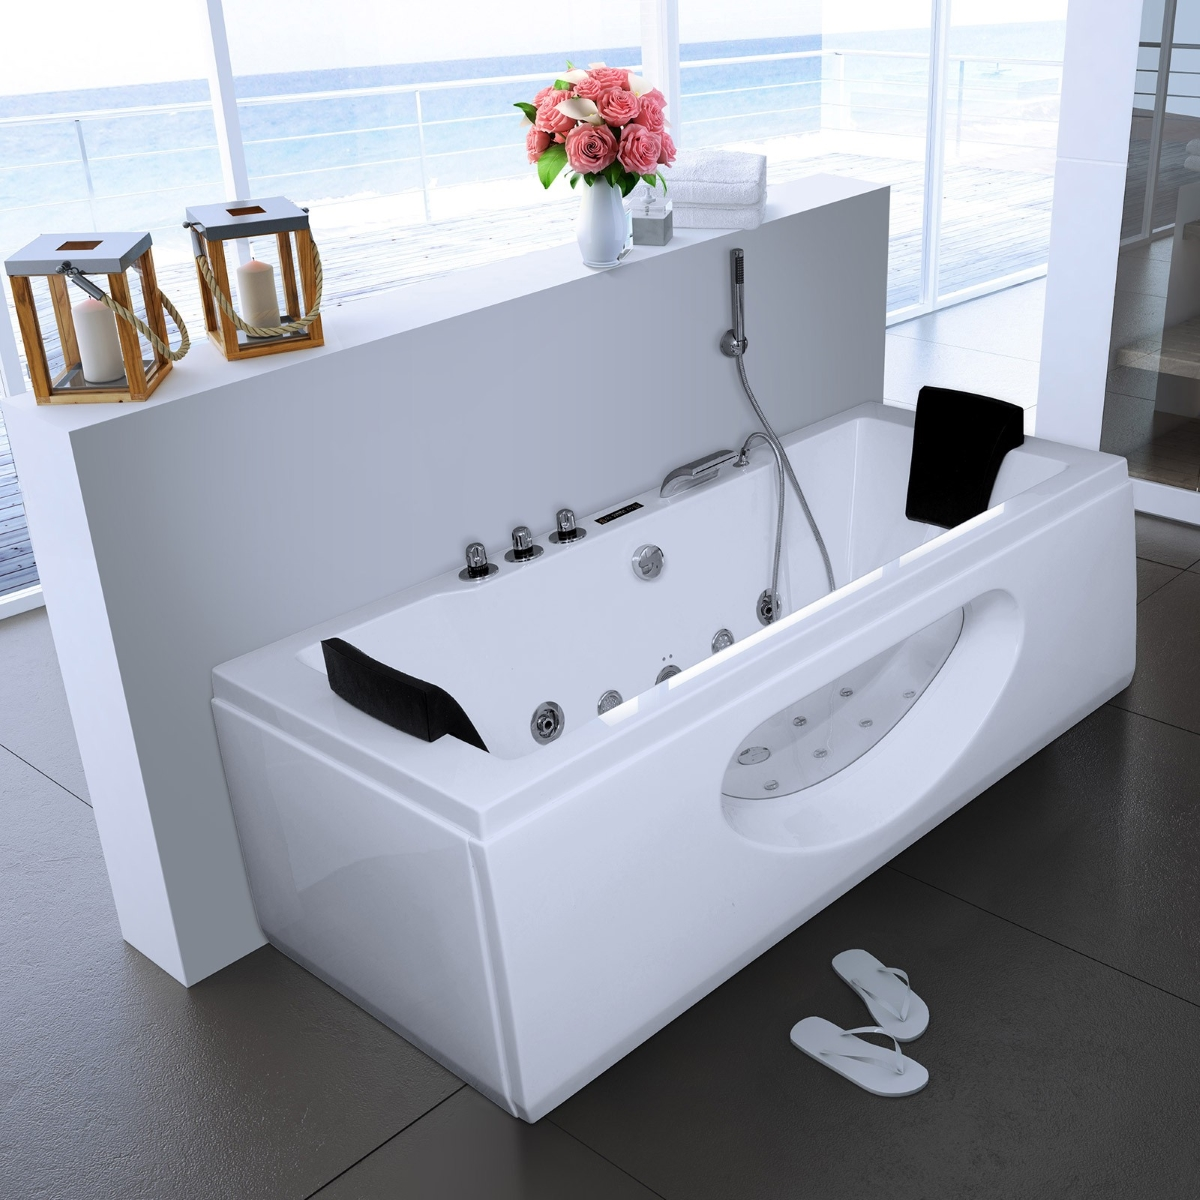 luxus whirlpool badewanne weiss mit glas heizung ozon. Black Bedroom Furniture Sets. Home Design Ideas